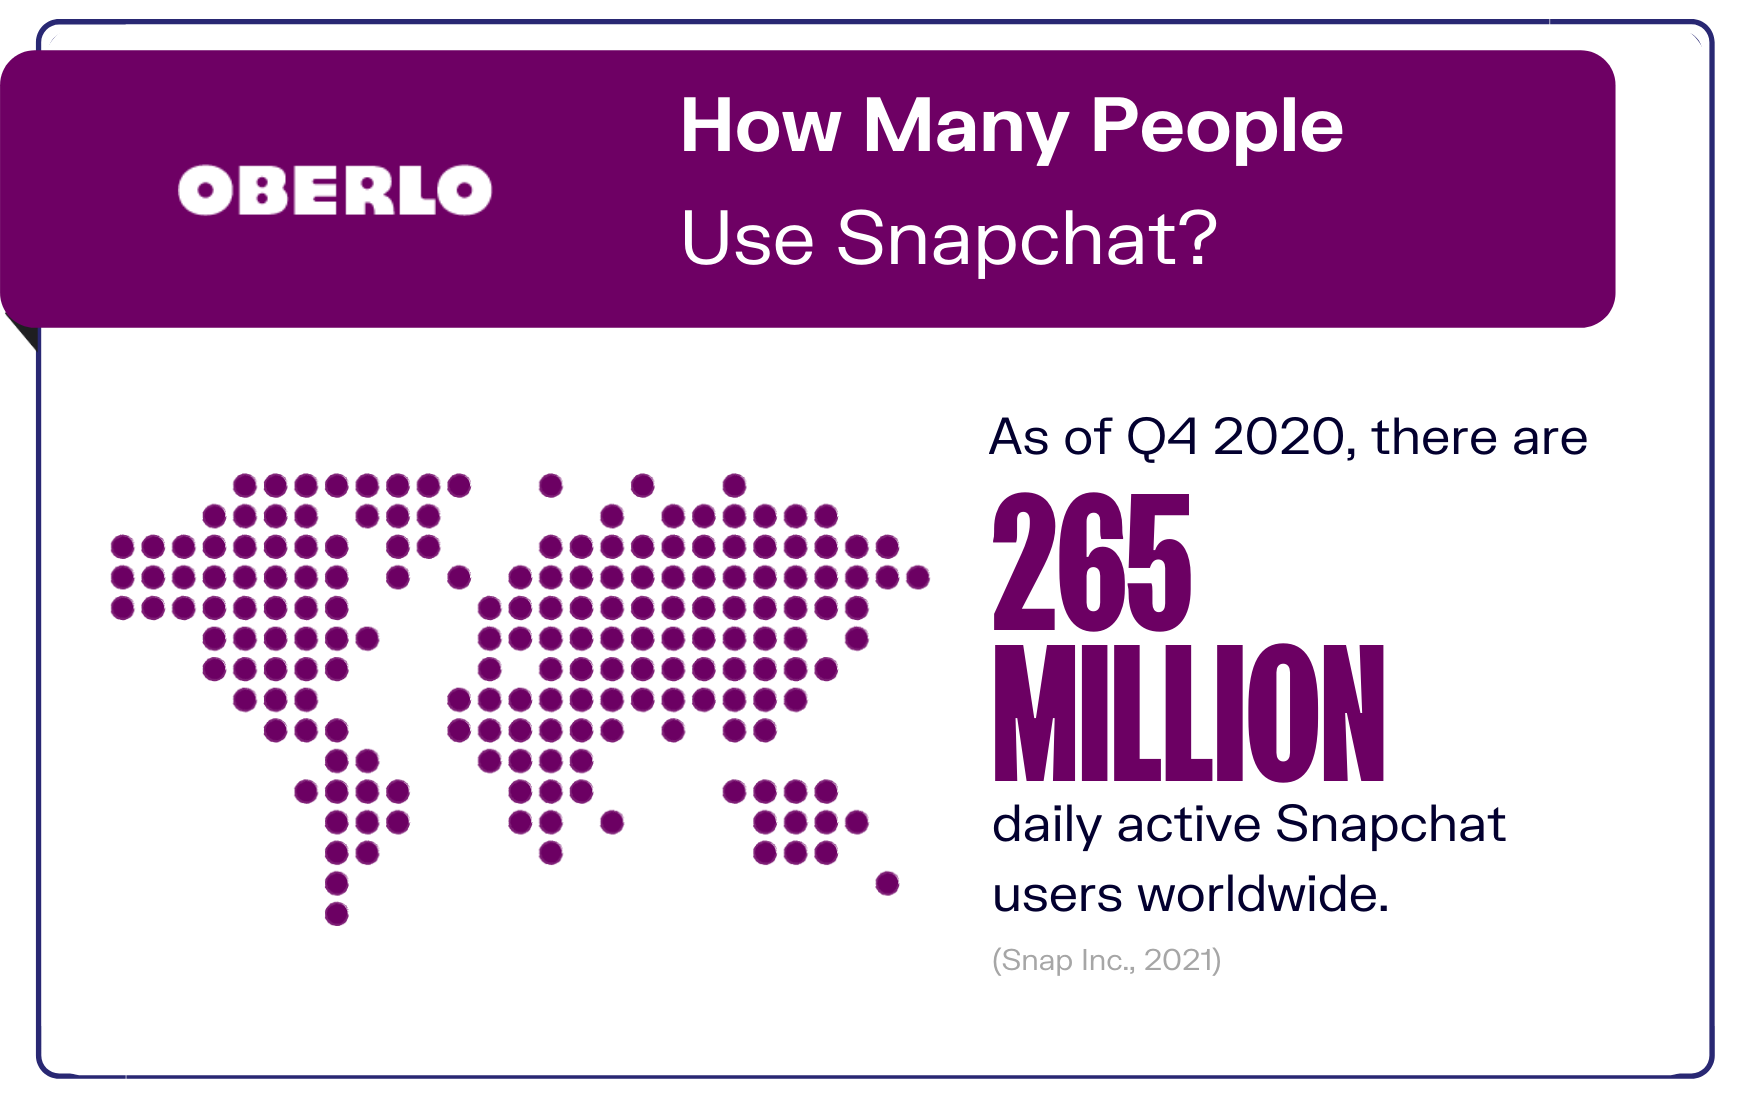 How Many People Use Snapchat graphic